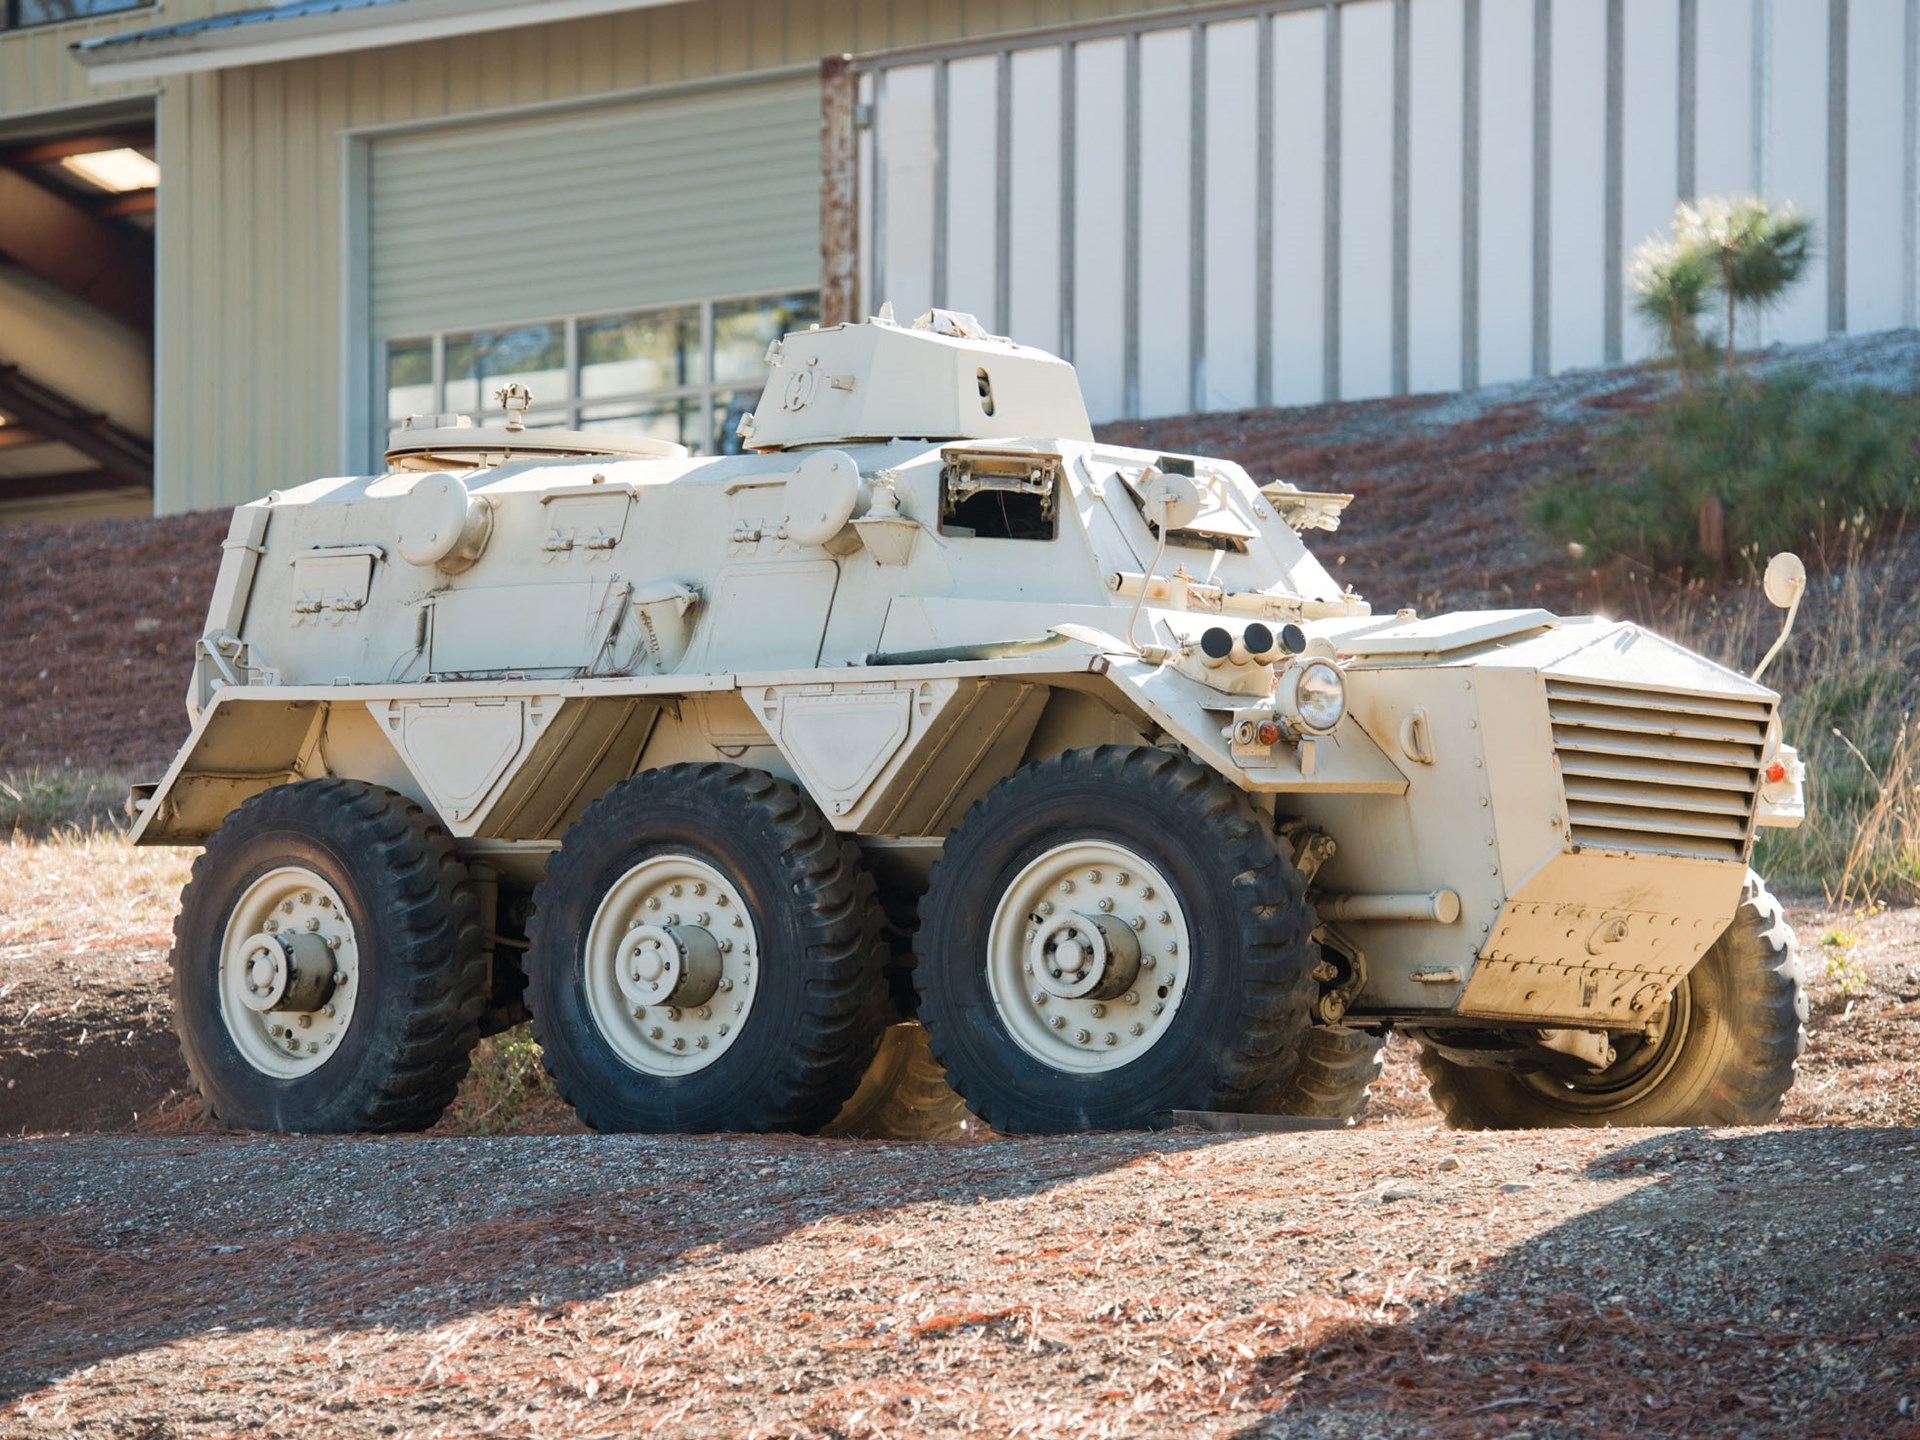 RM Sotheby's - FV603 Saracen Armored Personnel Carrier (APC) | The